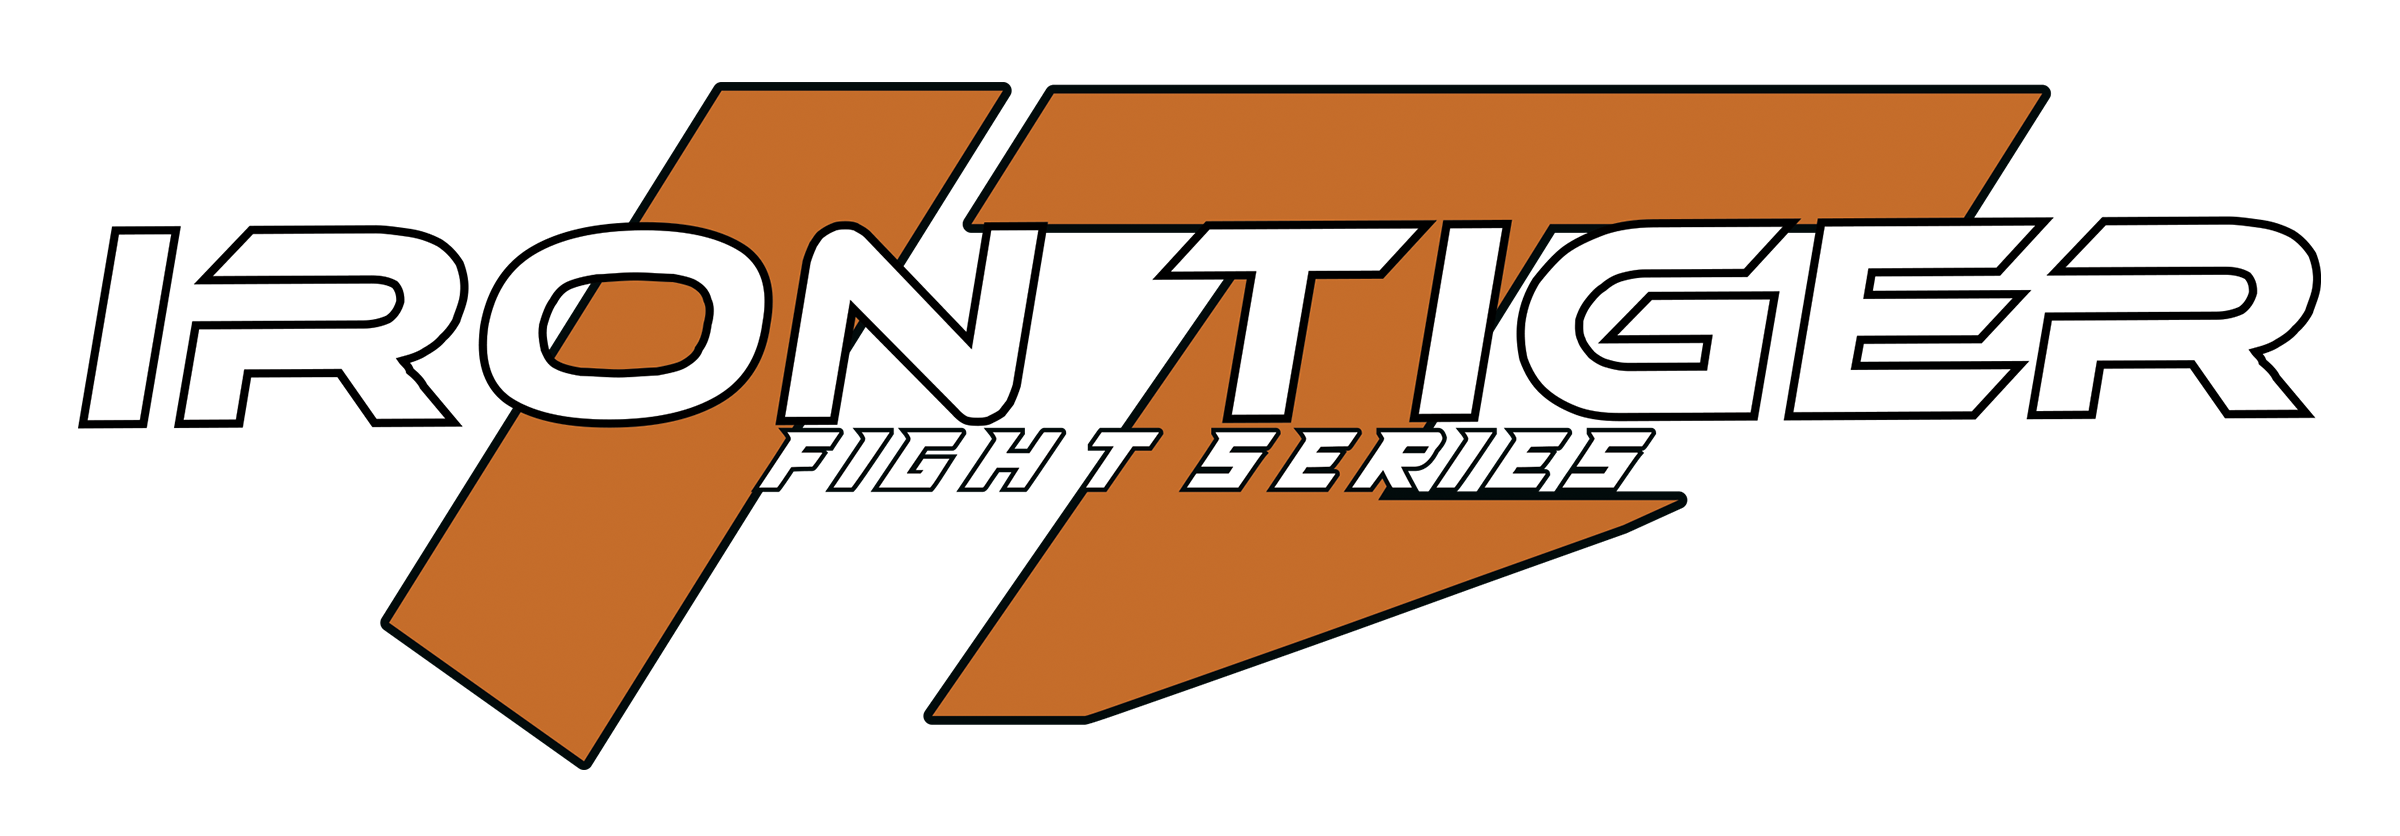 Iron Tiger Fight Series